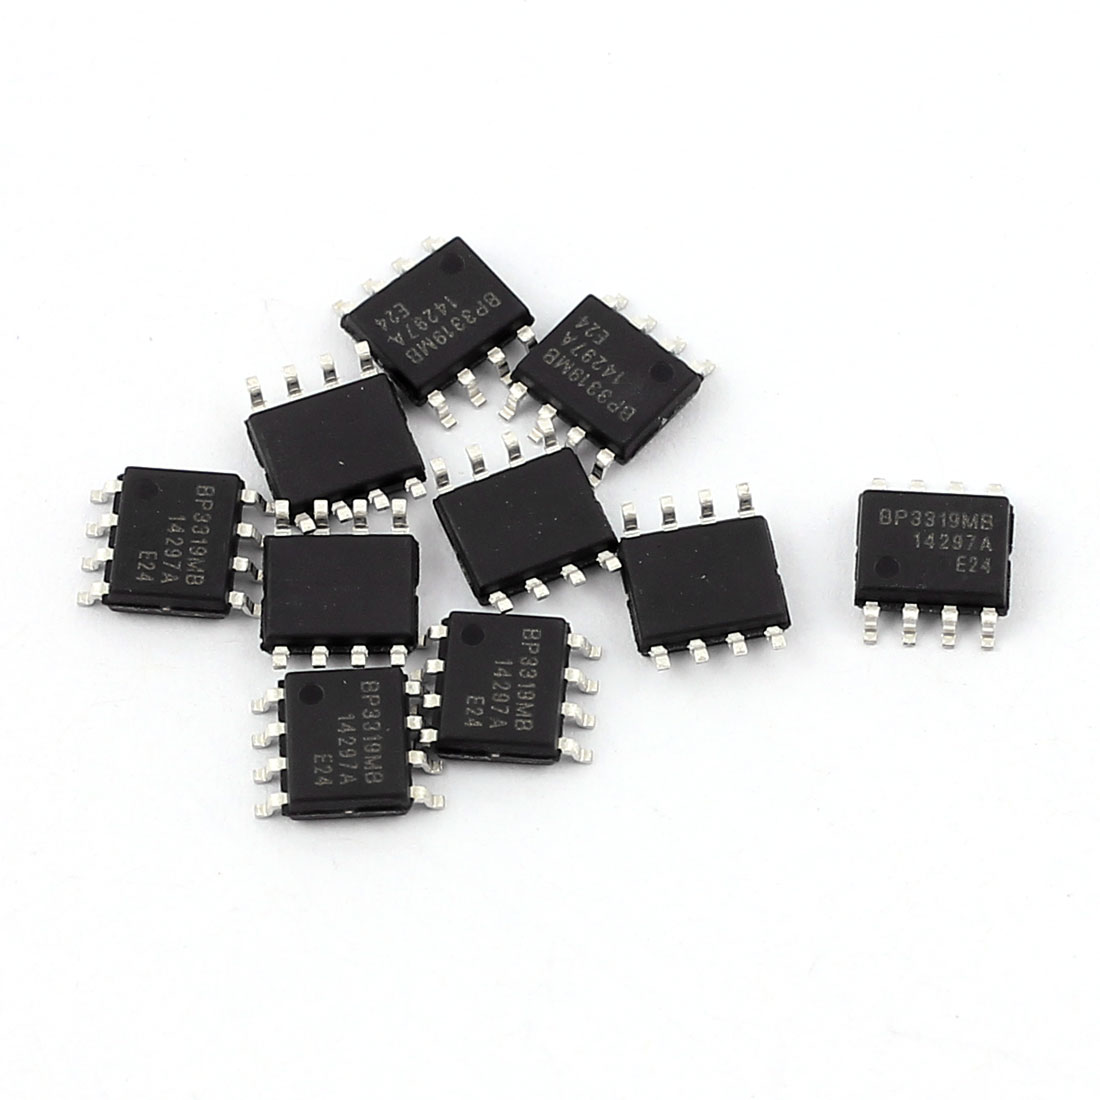 10Pcs BP3319 SOP-8 SMD SMT Type PCB Surface Mount LED Driver Circuit Module Integrated Circuit IC Chip